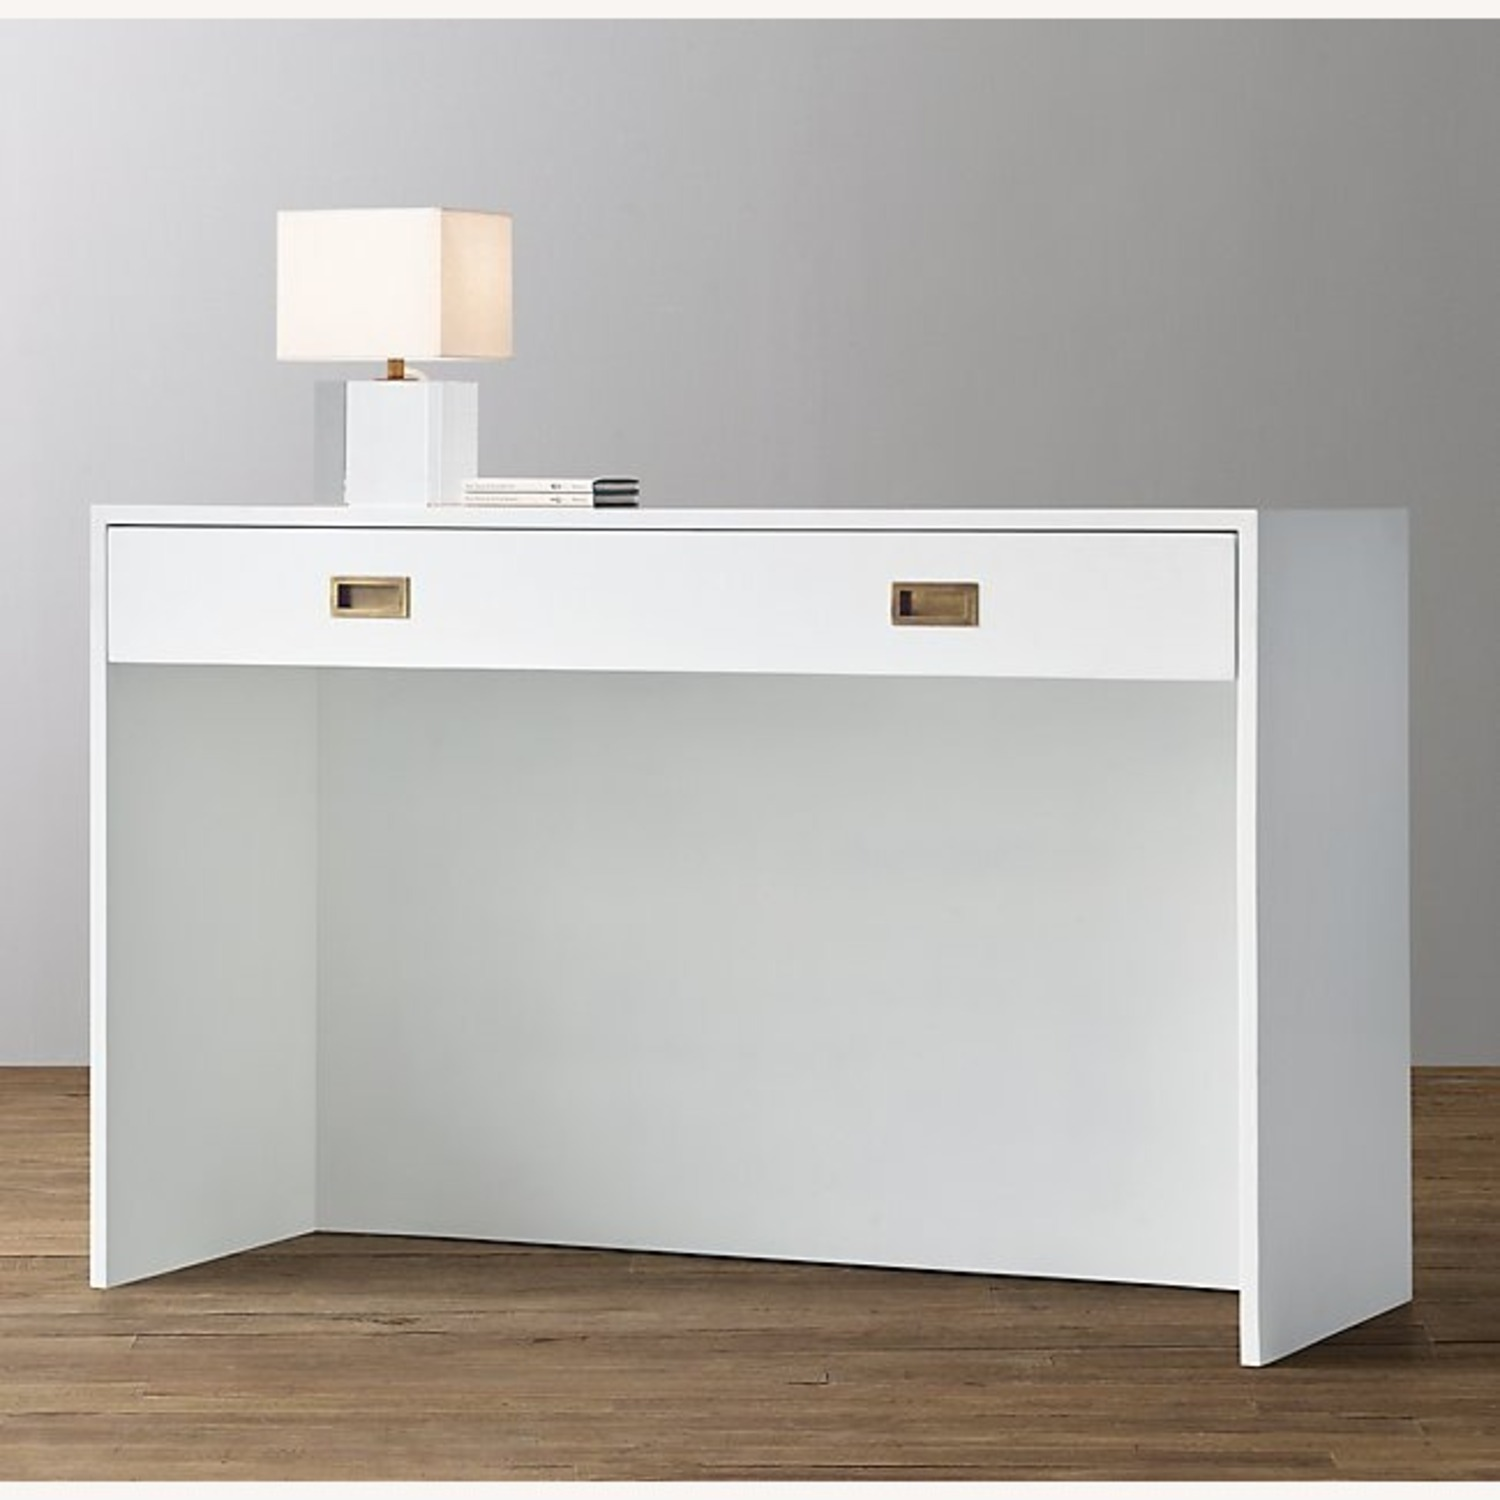 Restoration Hardware Avalon Desk in White - image-2